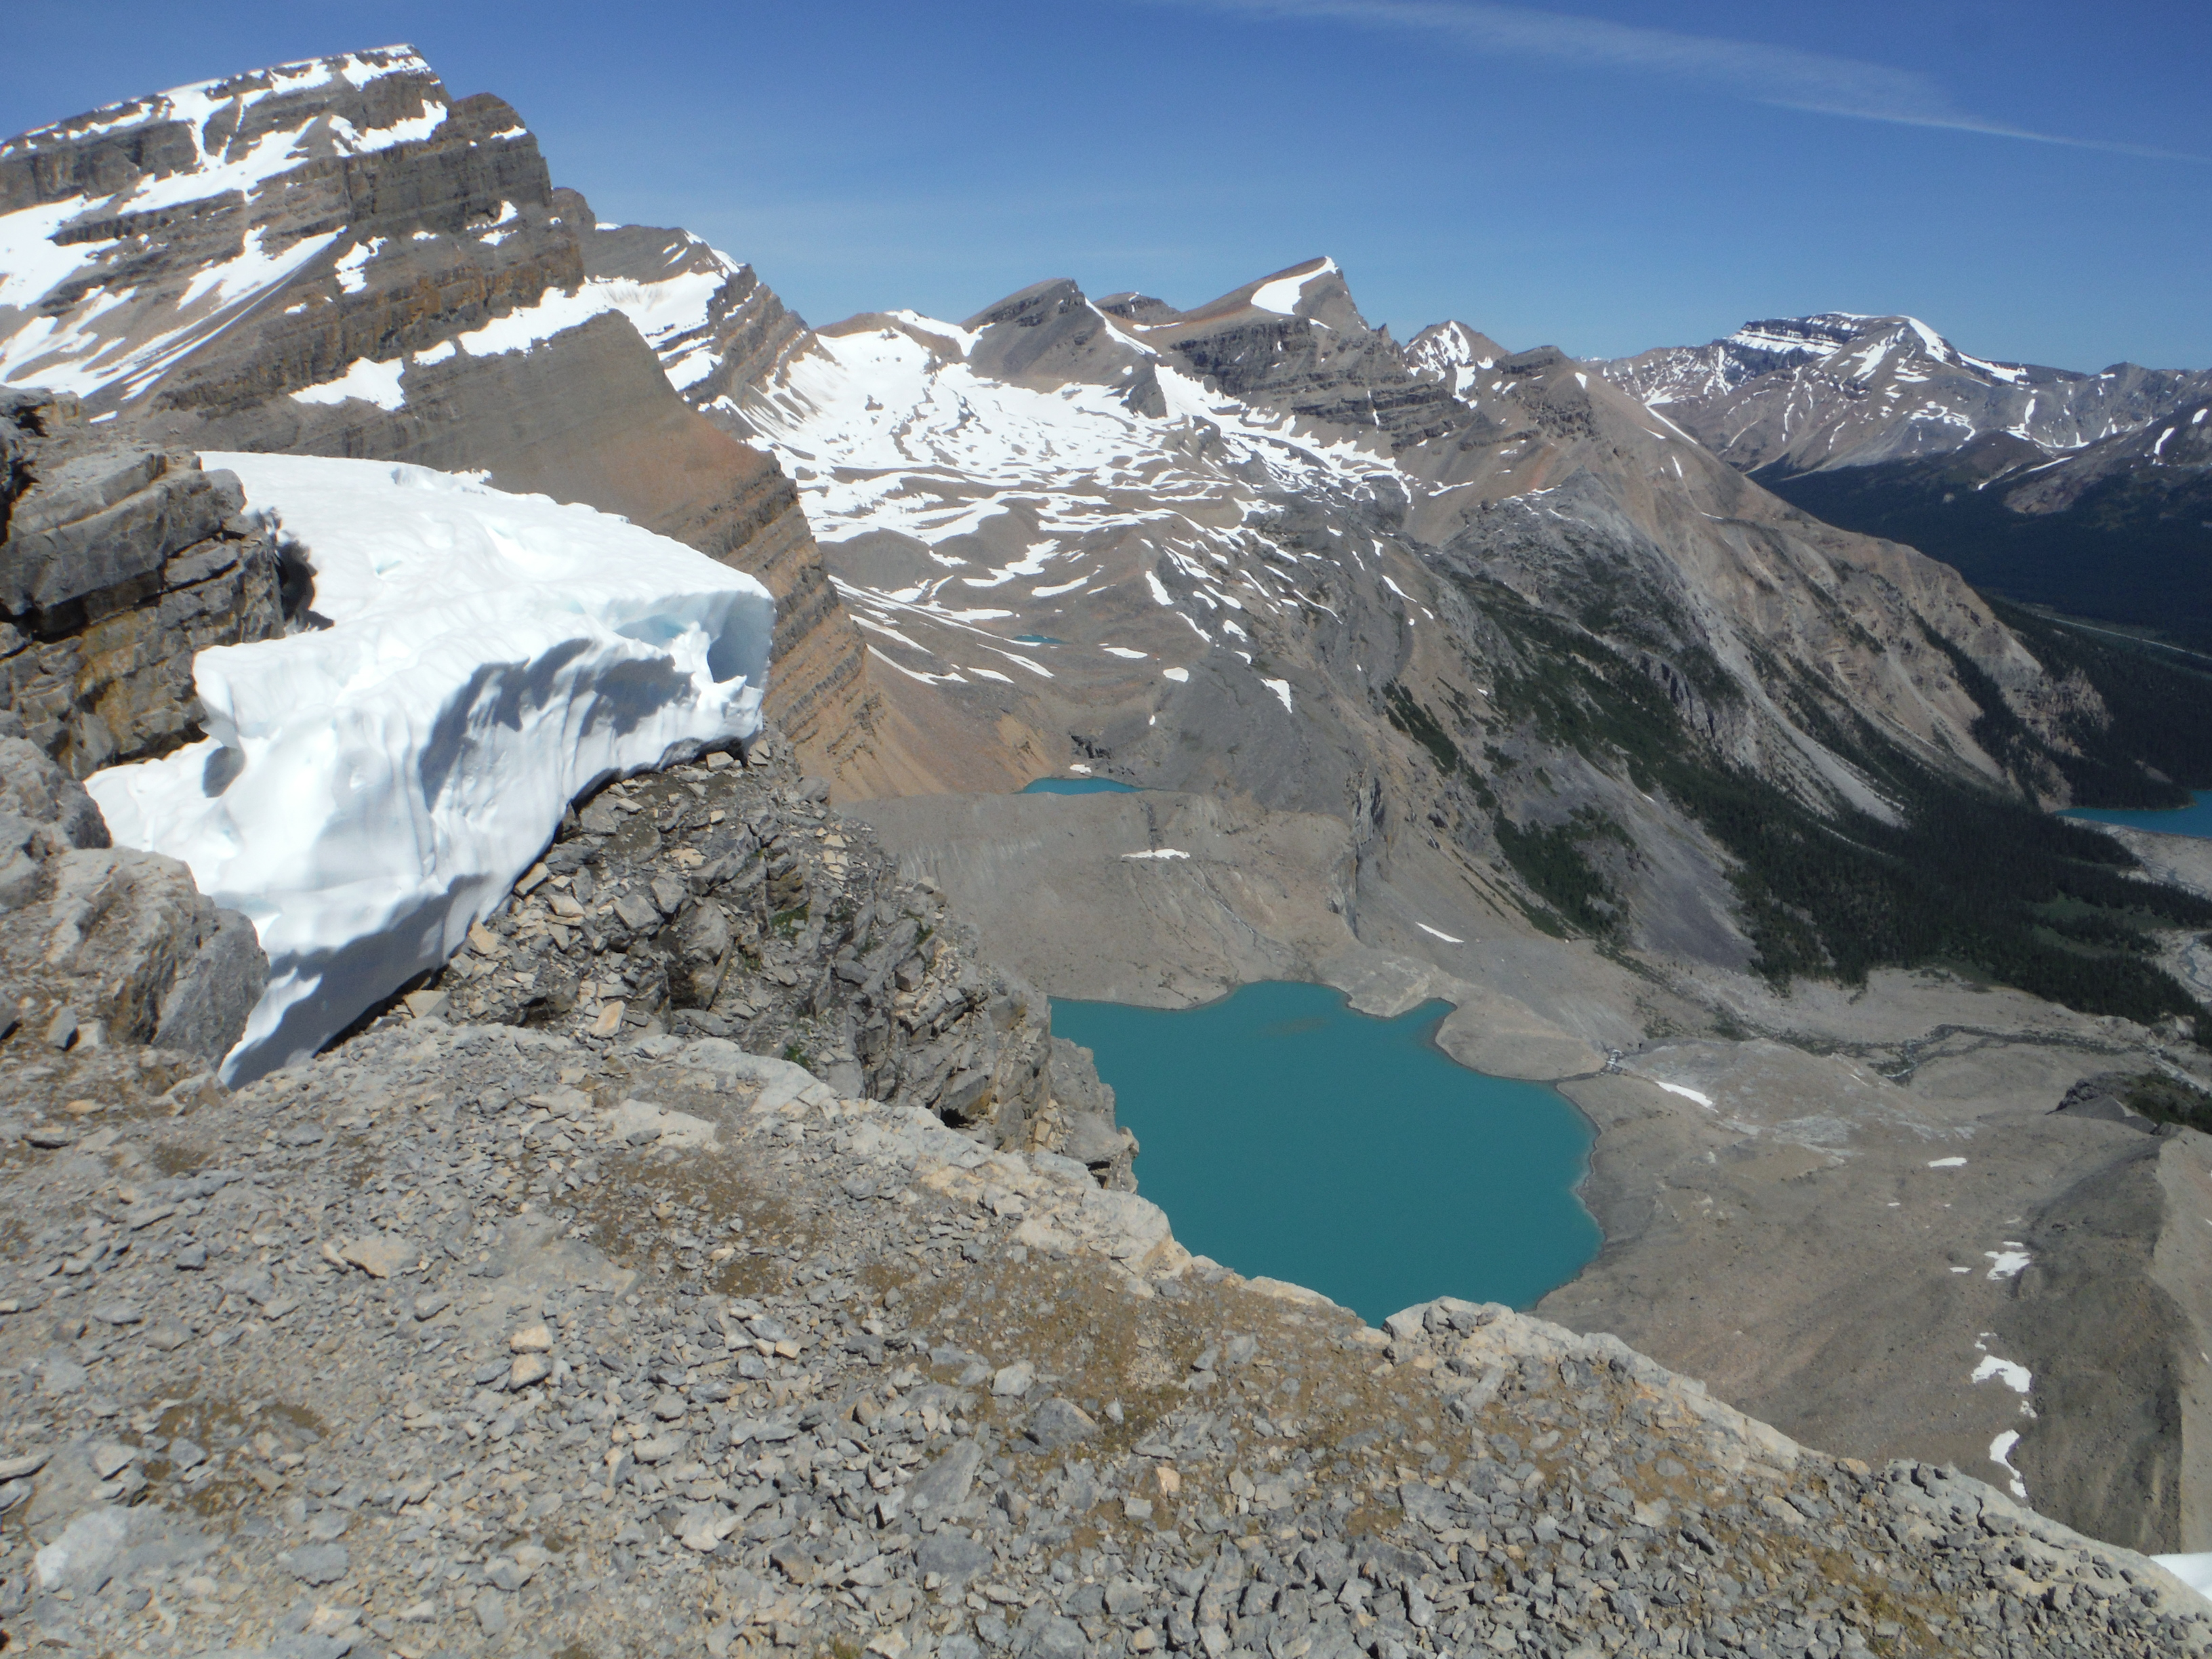 The Onion Iceberg Lake Mt. Thompson Portal Peak Mt. Jimmy Simpson Banff National Park Wapta Icefield Bow Lake